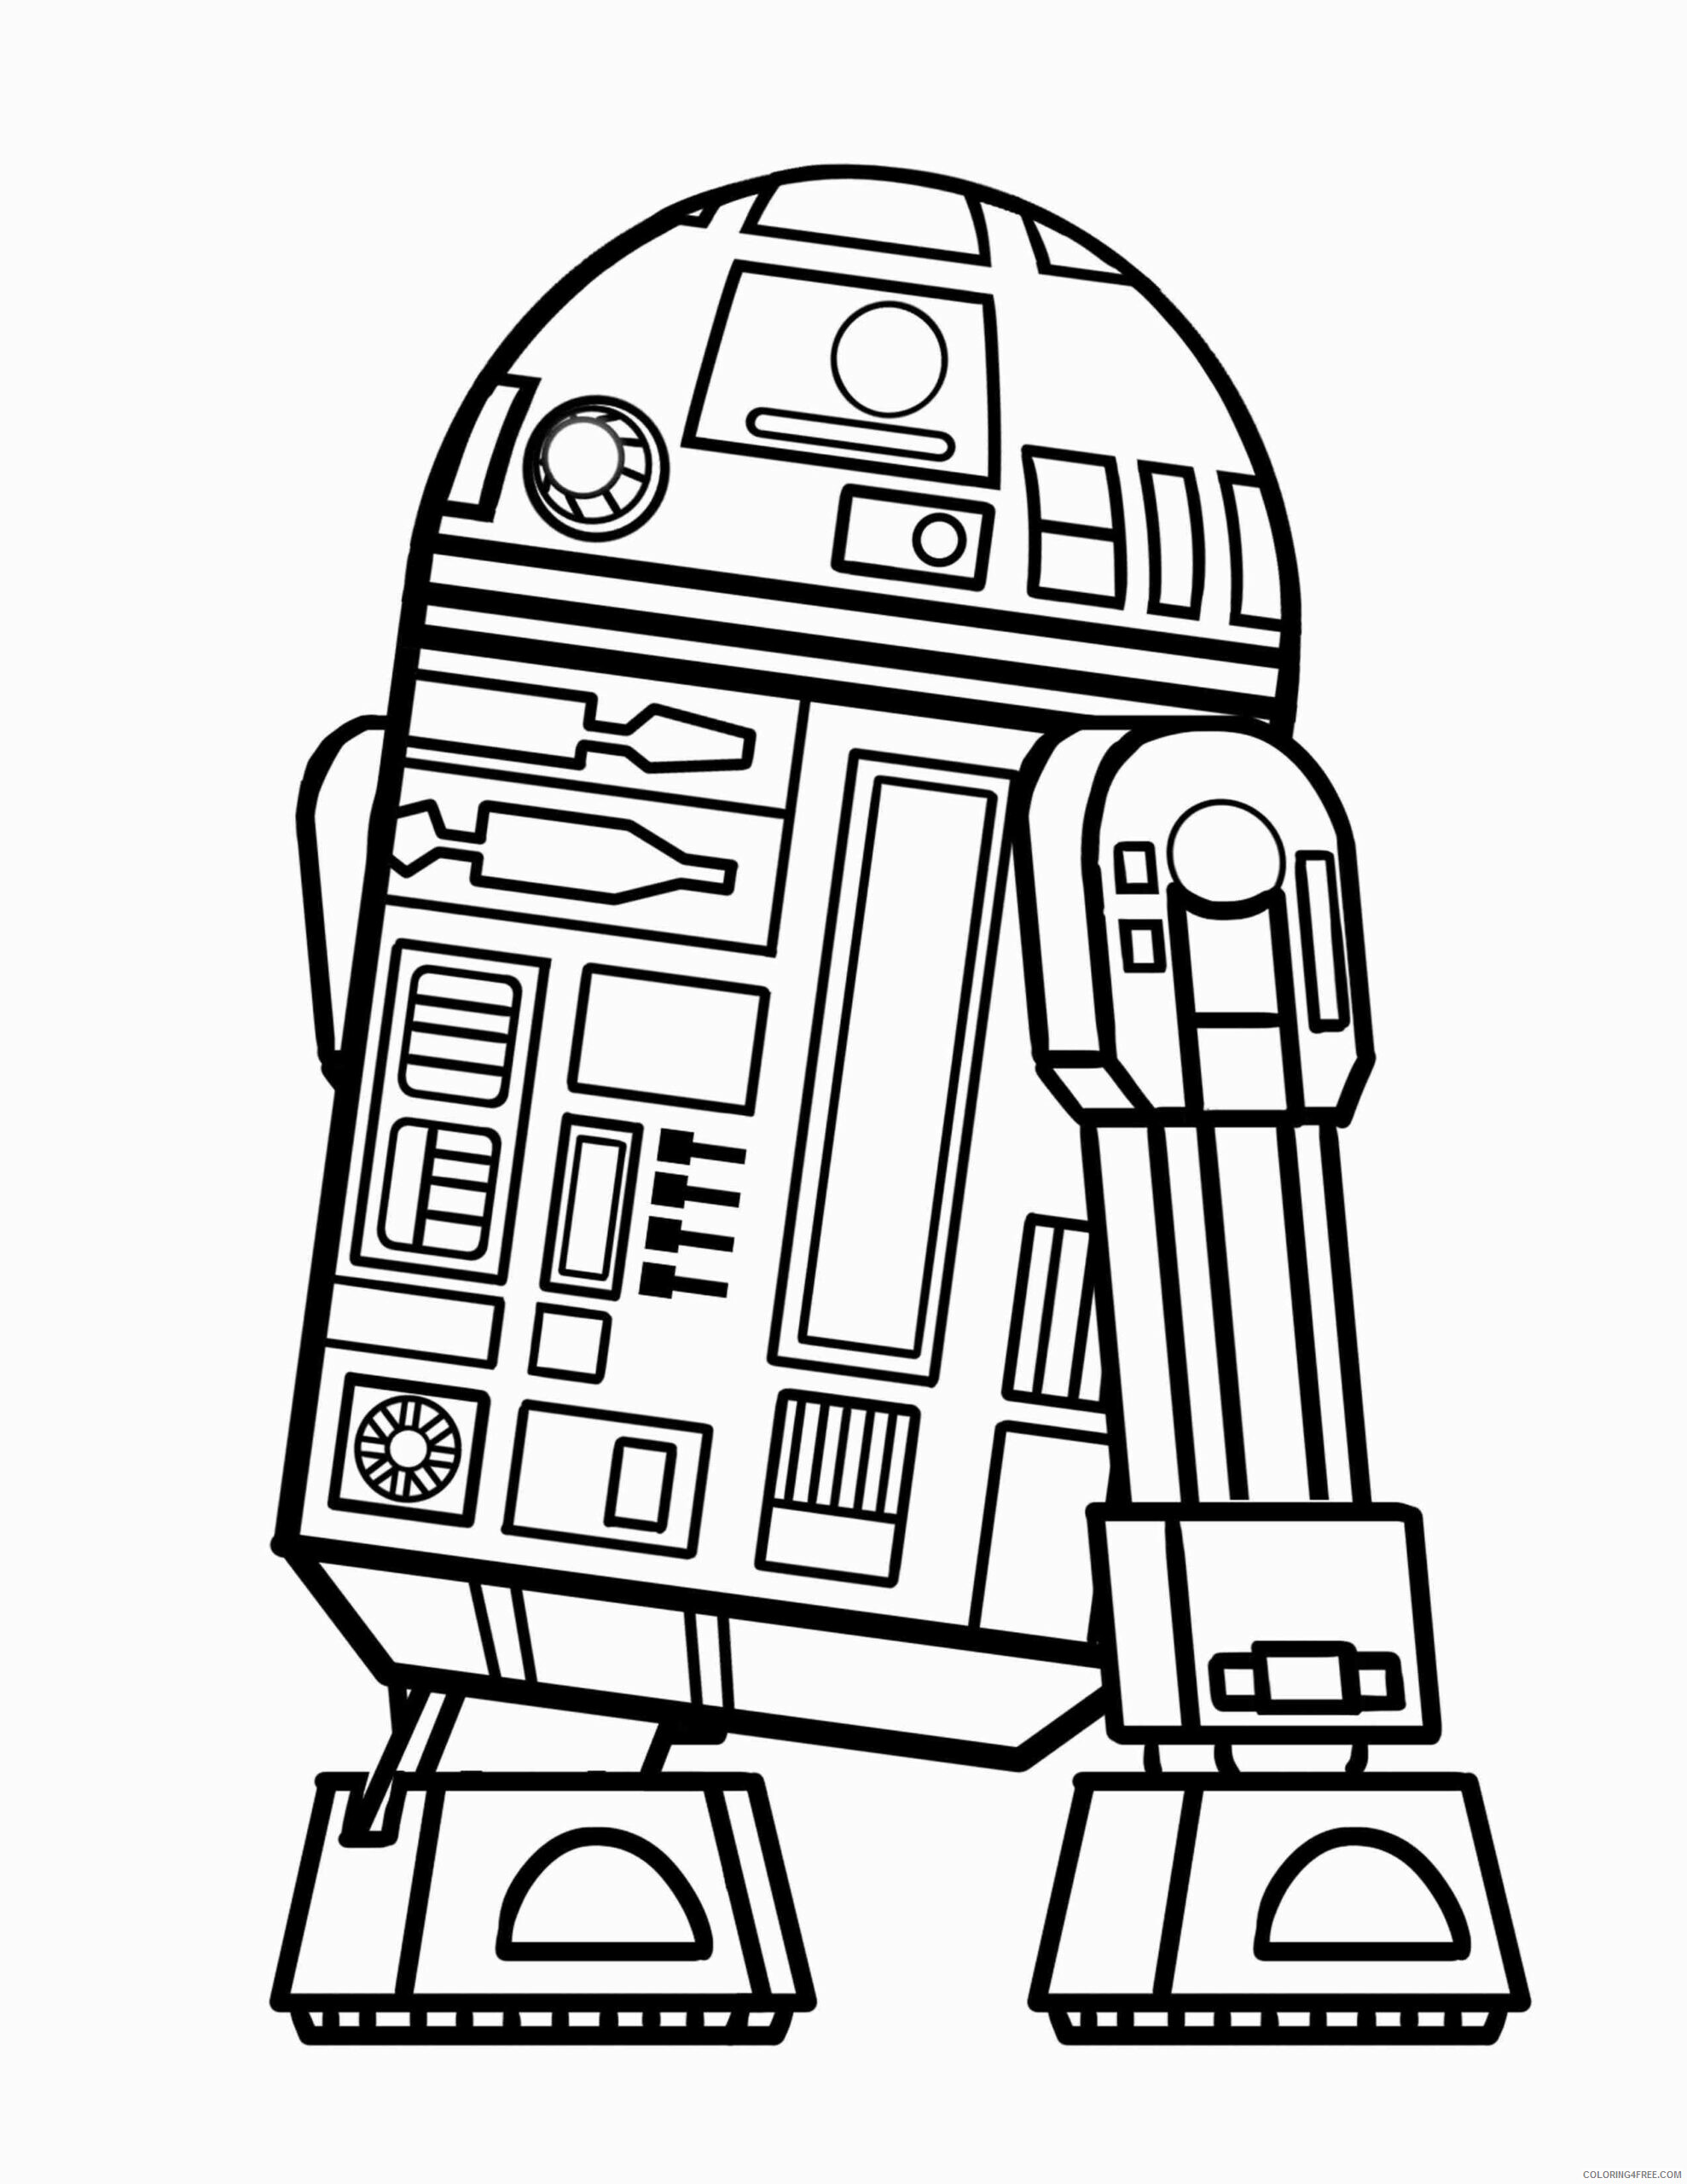 Star Wars R2D2 Coloring Pages TV Film Easy R2D2 Printable 2020 08059 Coloring4free